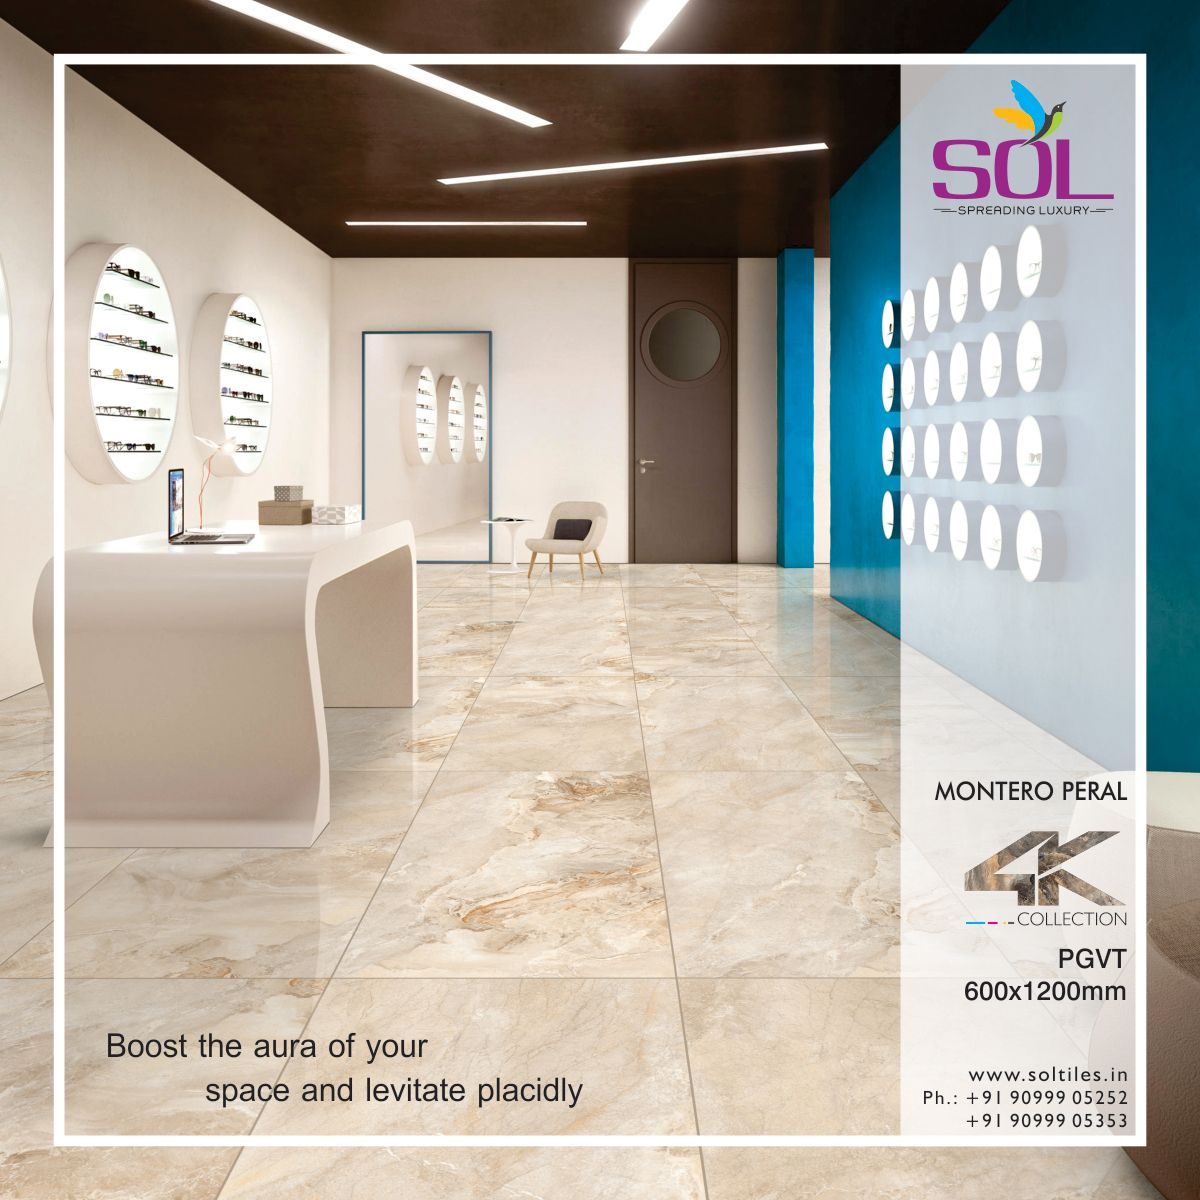 Pin By Sol Tiles On Pgvt Tiles Levitation Peral Tiles